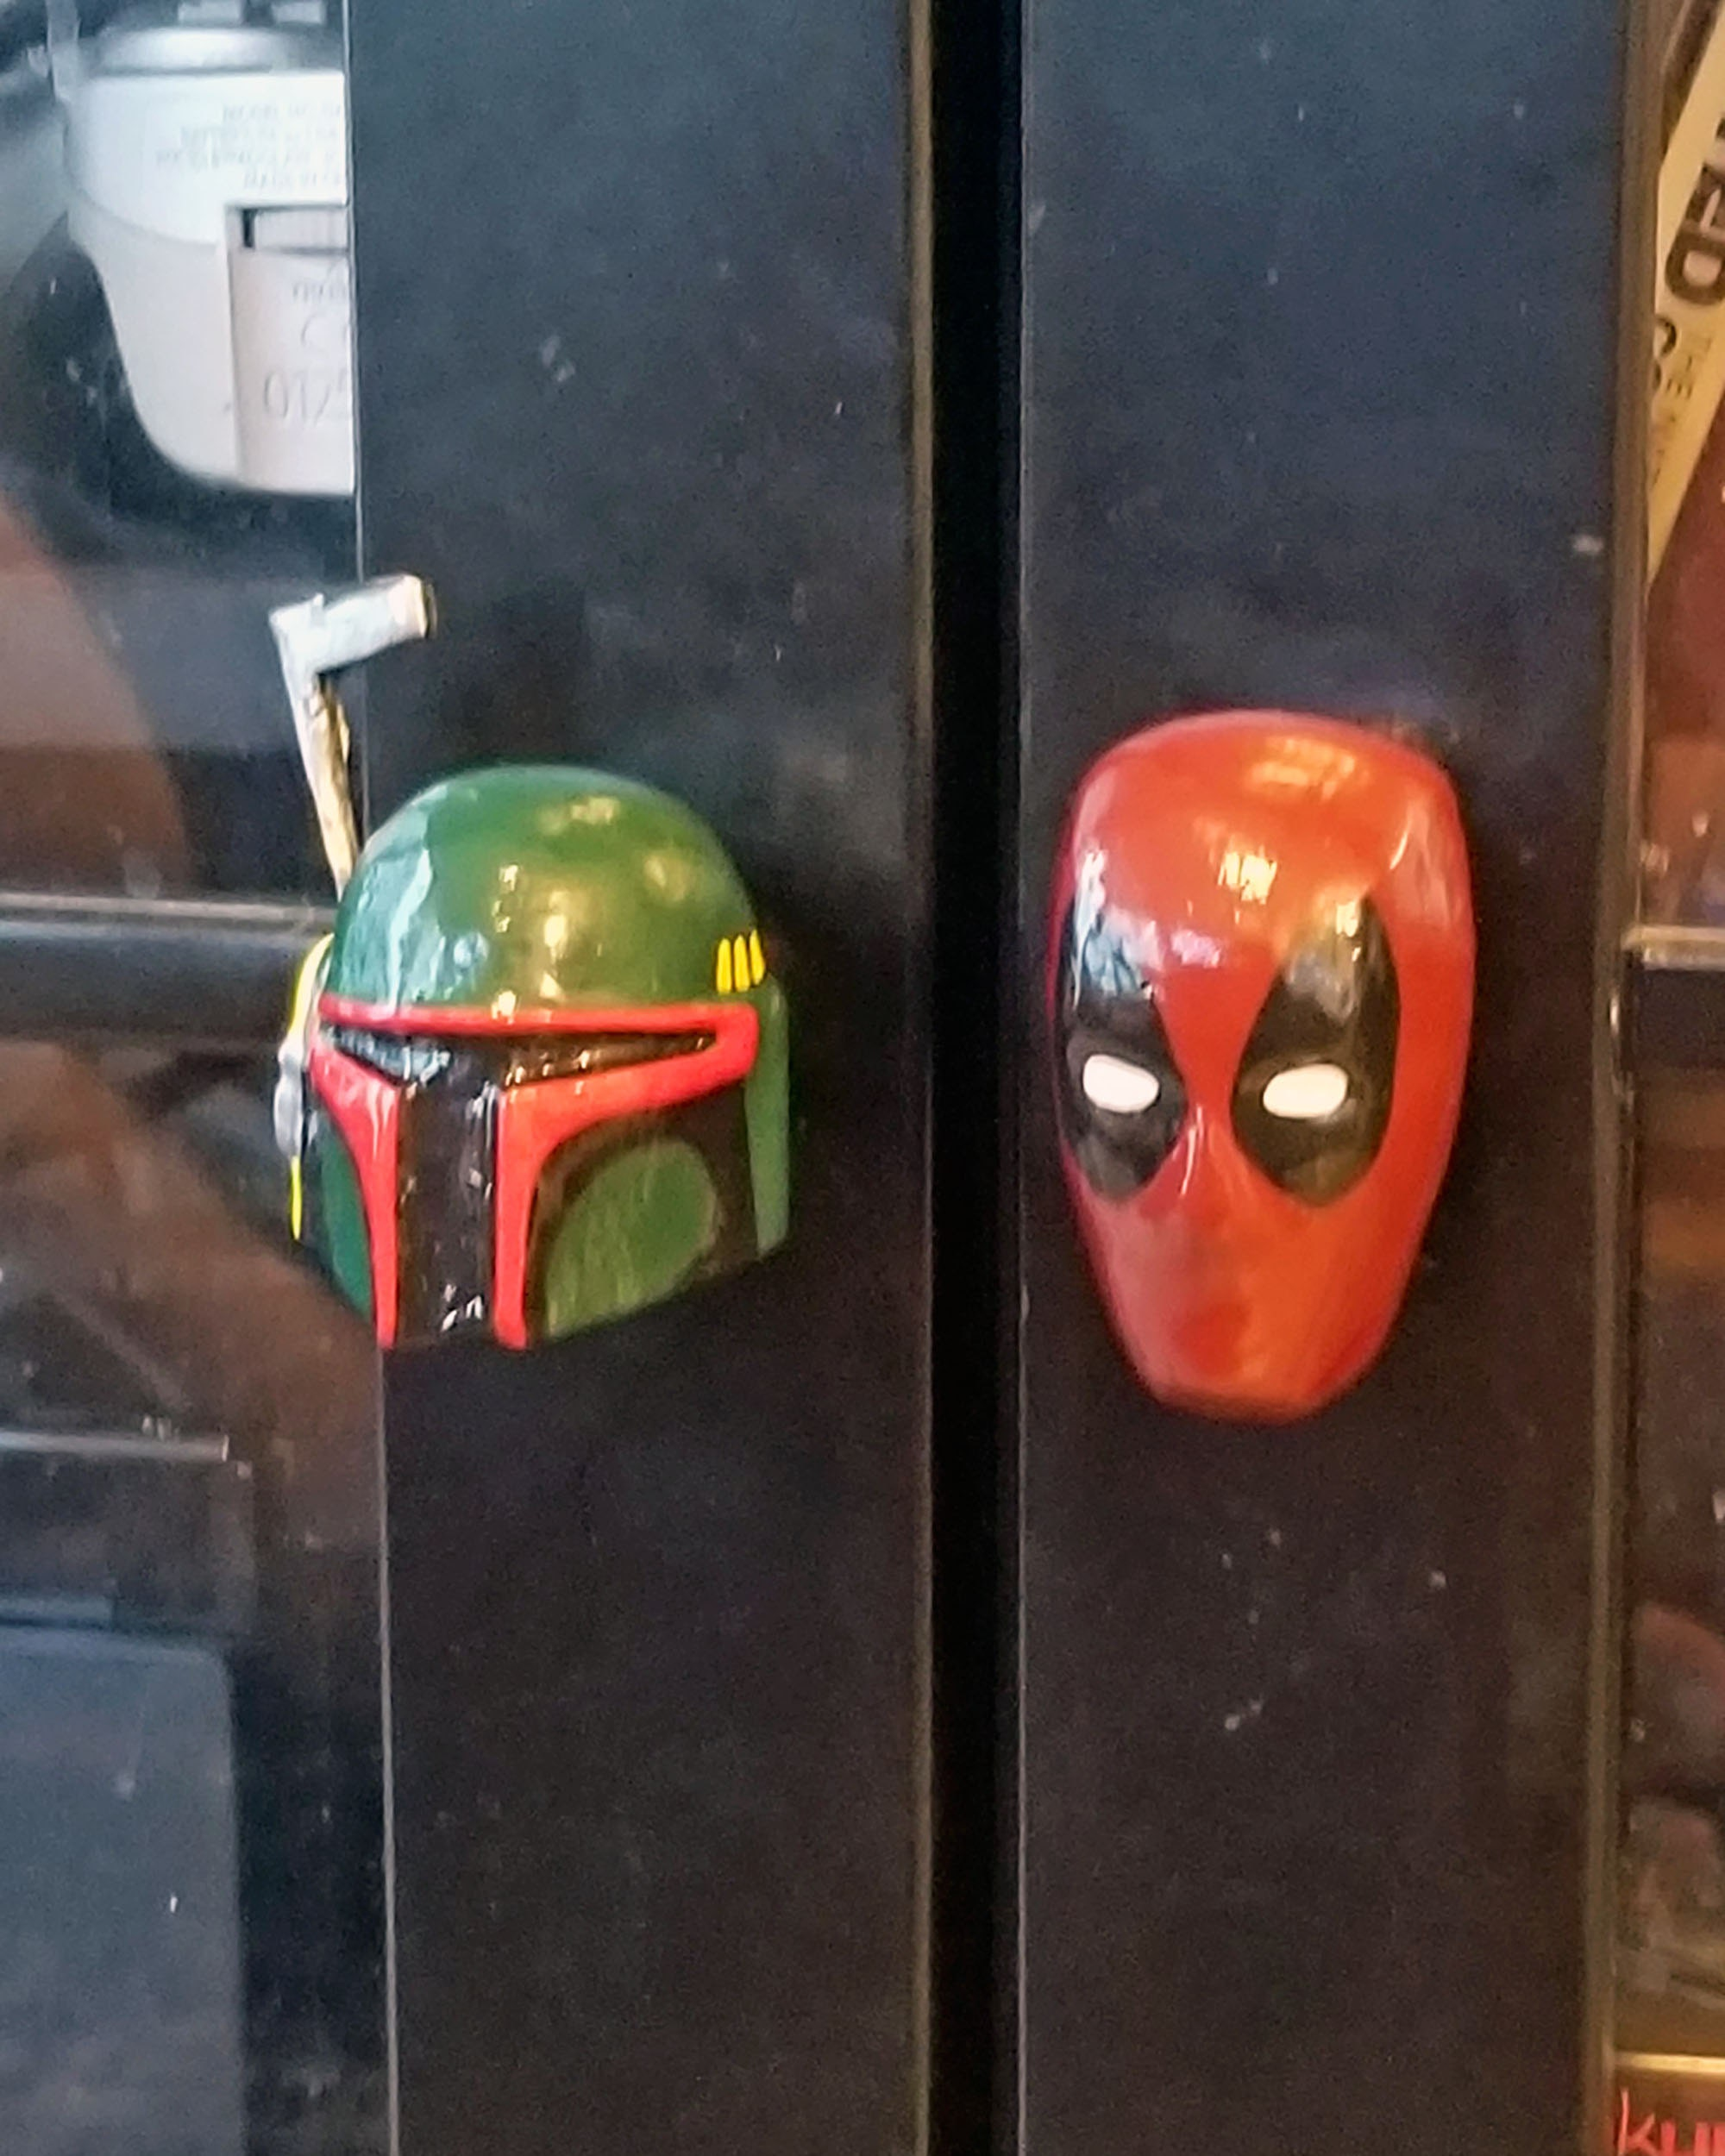 Marvel Deadpool Drawer Pull w/ Star Wars Boba Fett Cabinet Knob on Video Games Furniture Desk